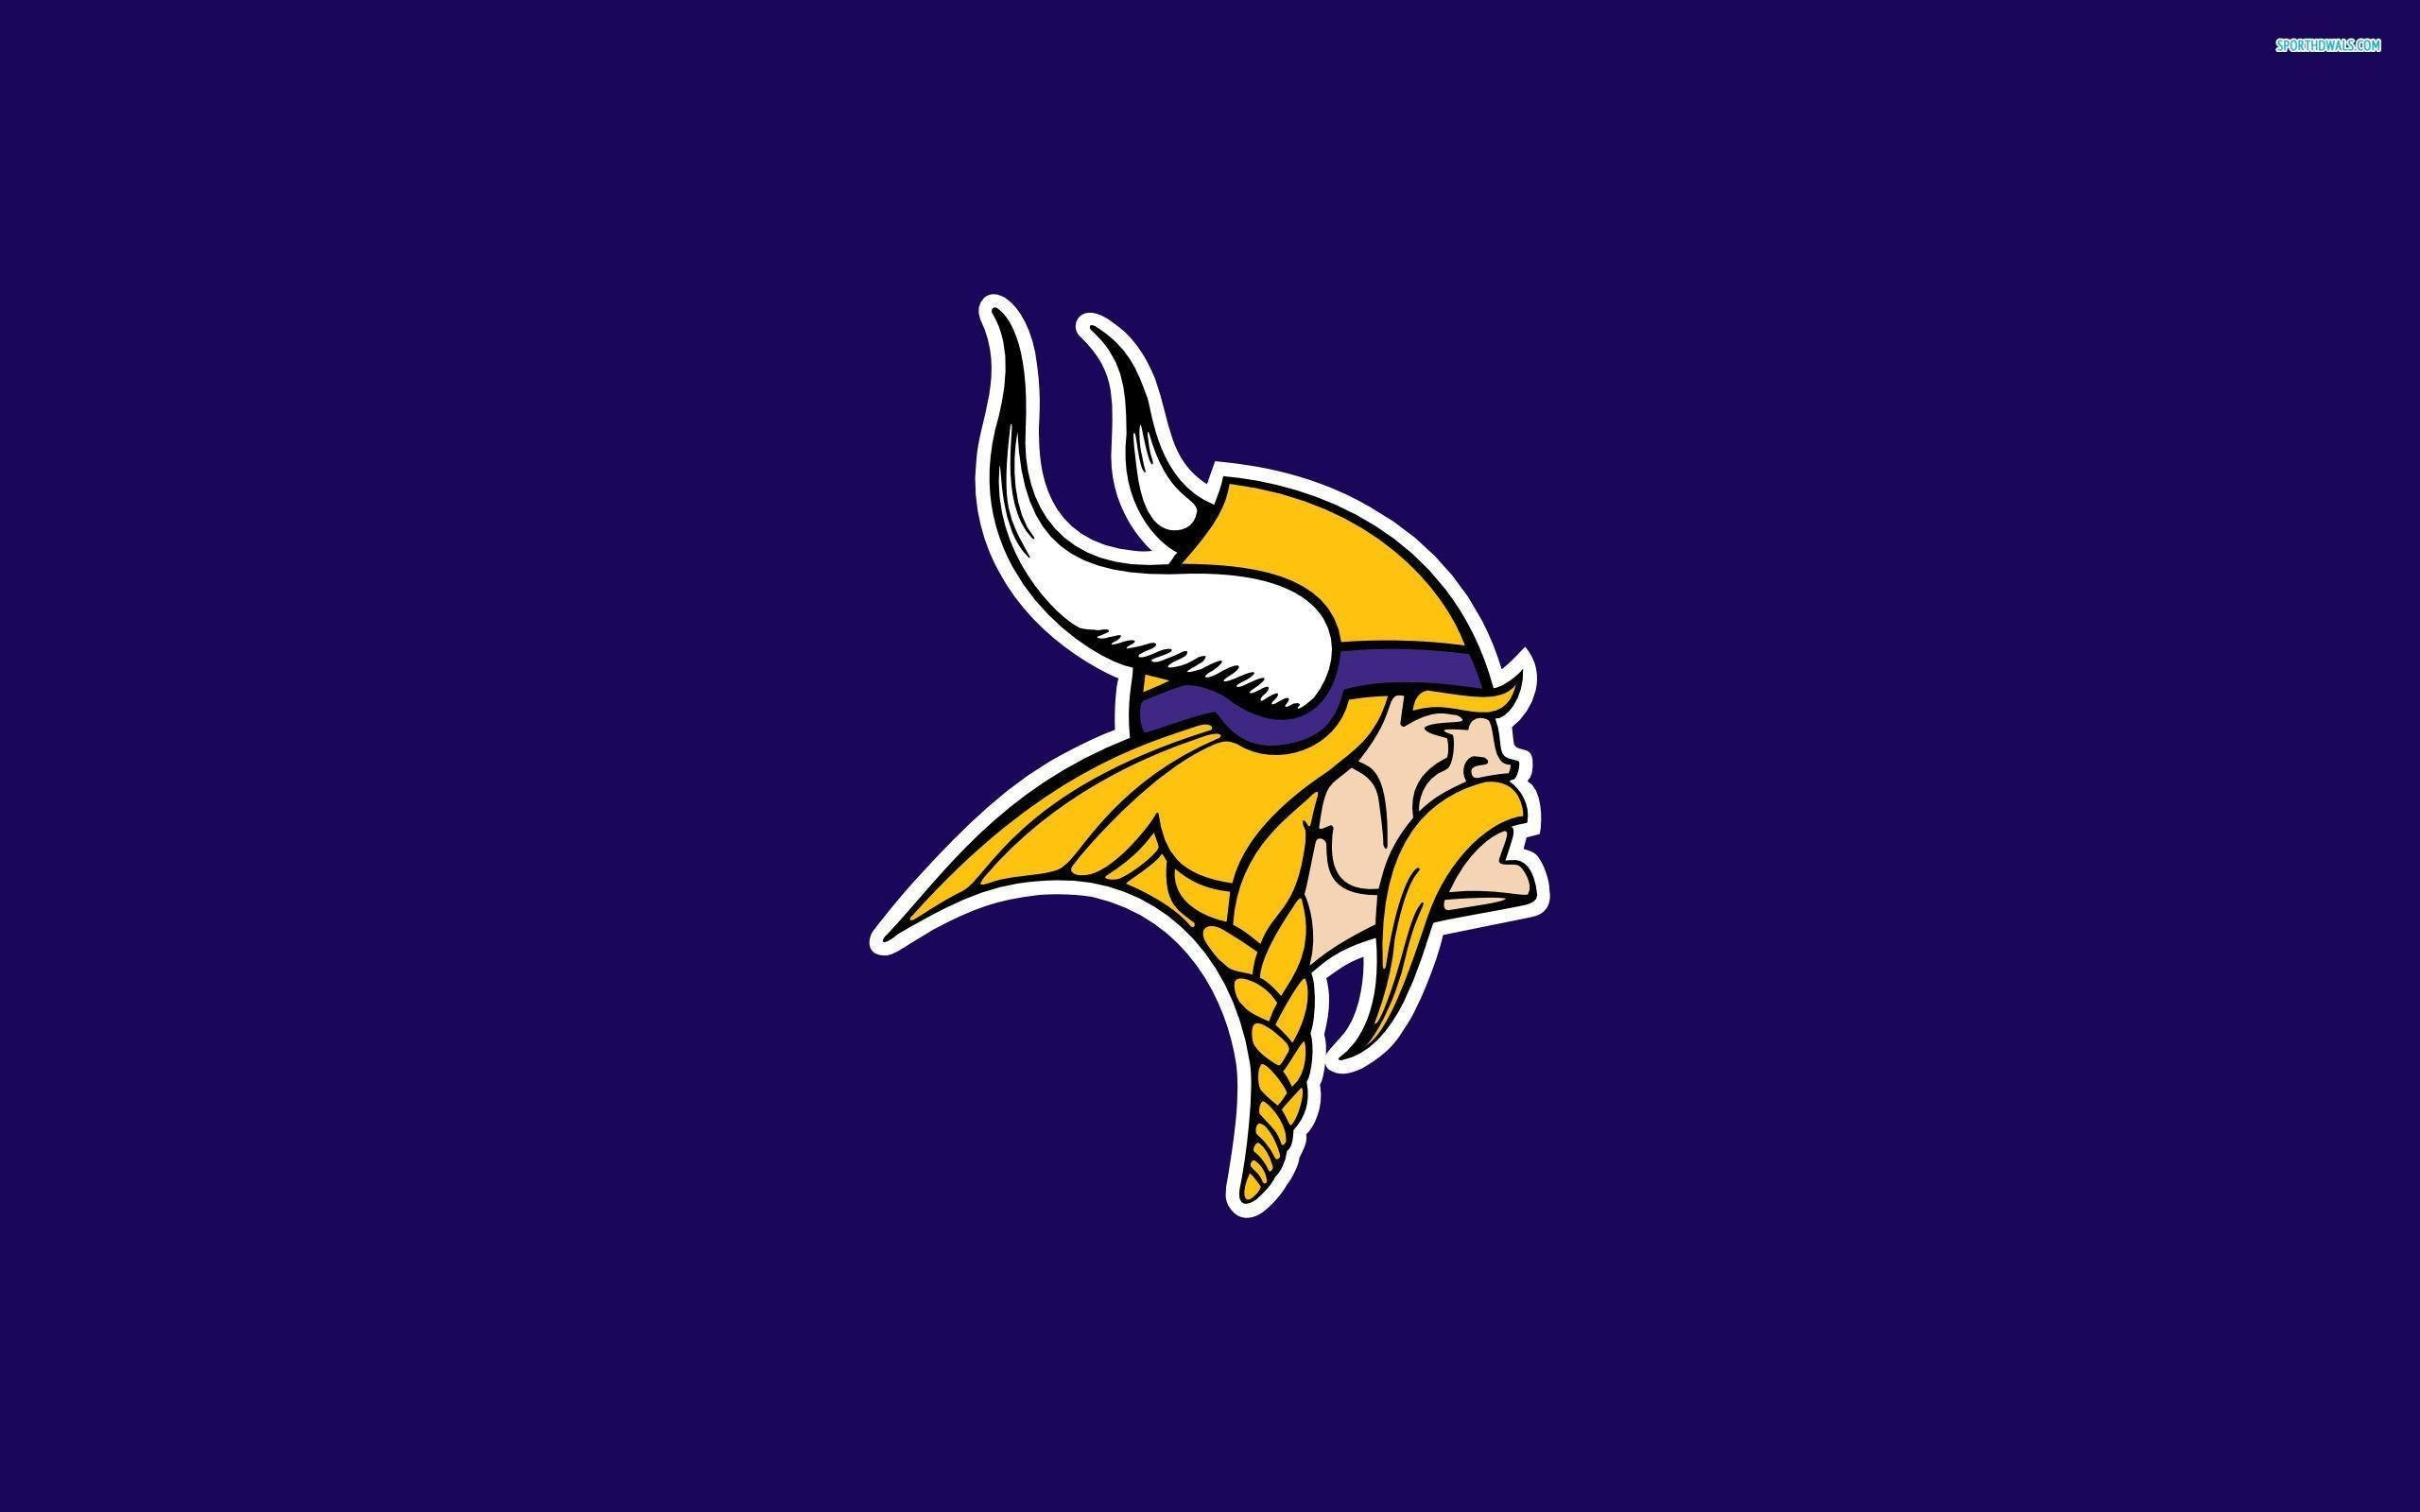 Minnesota Vikings wallpaper #